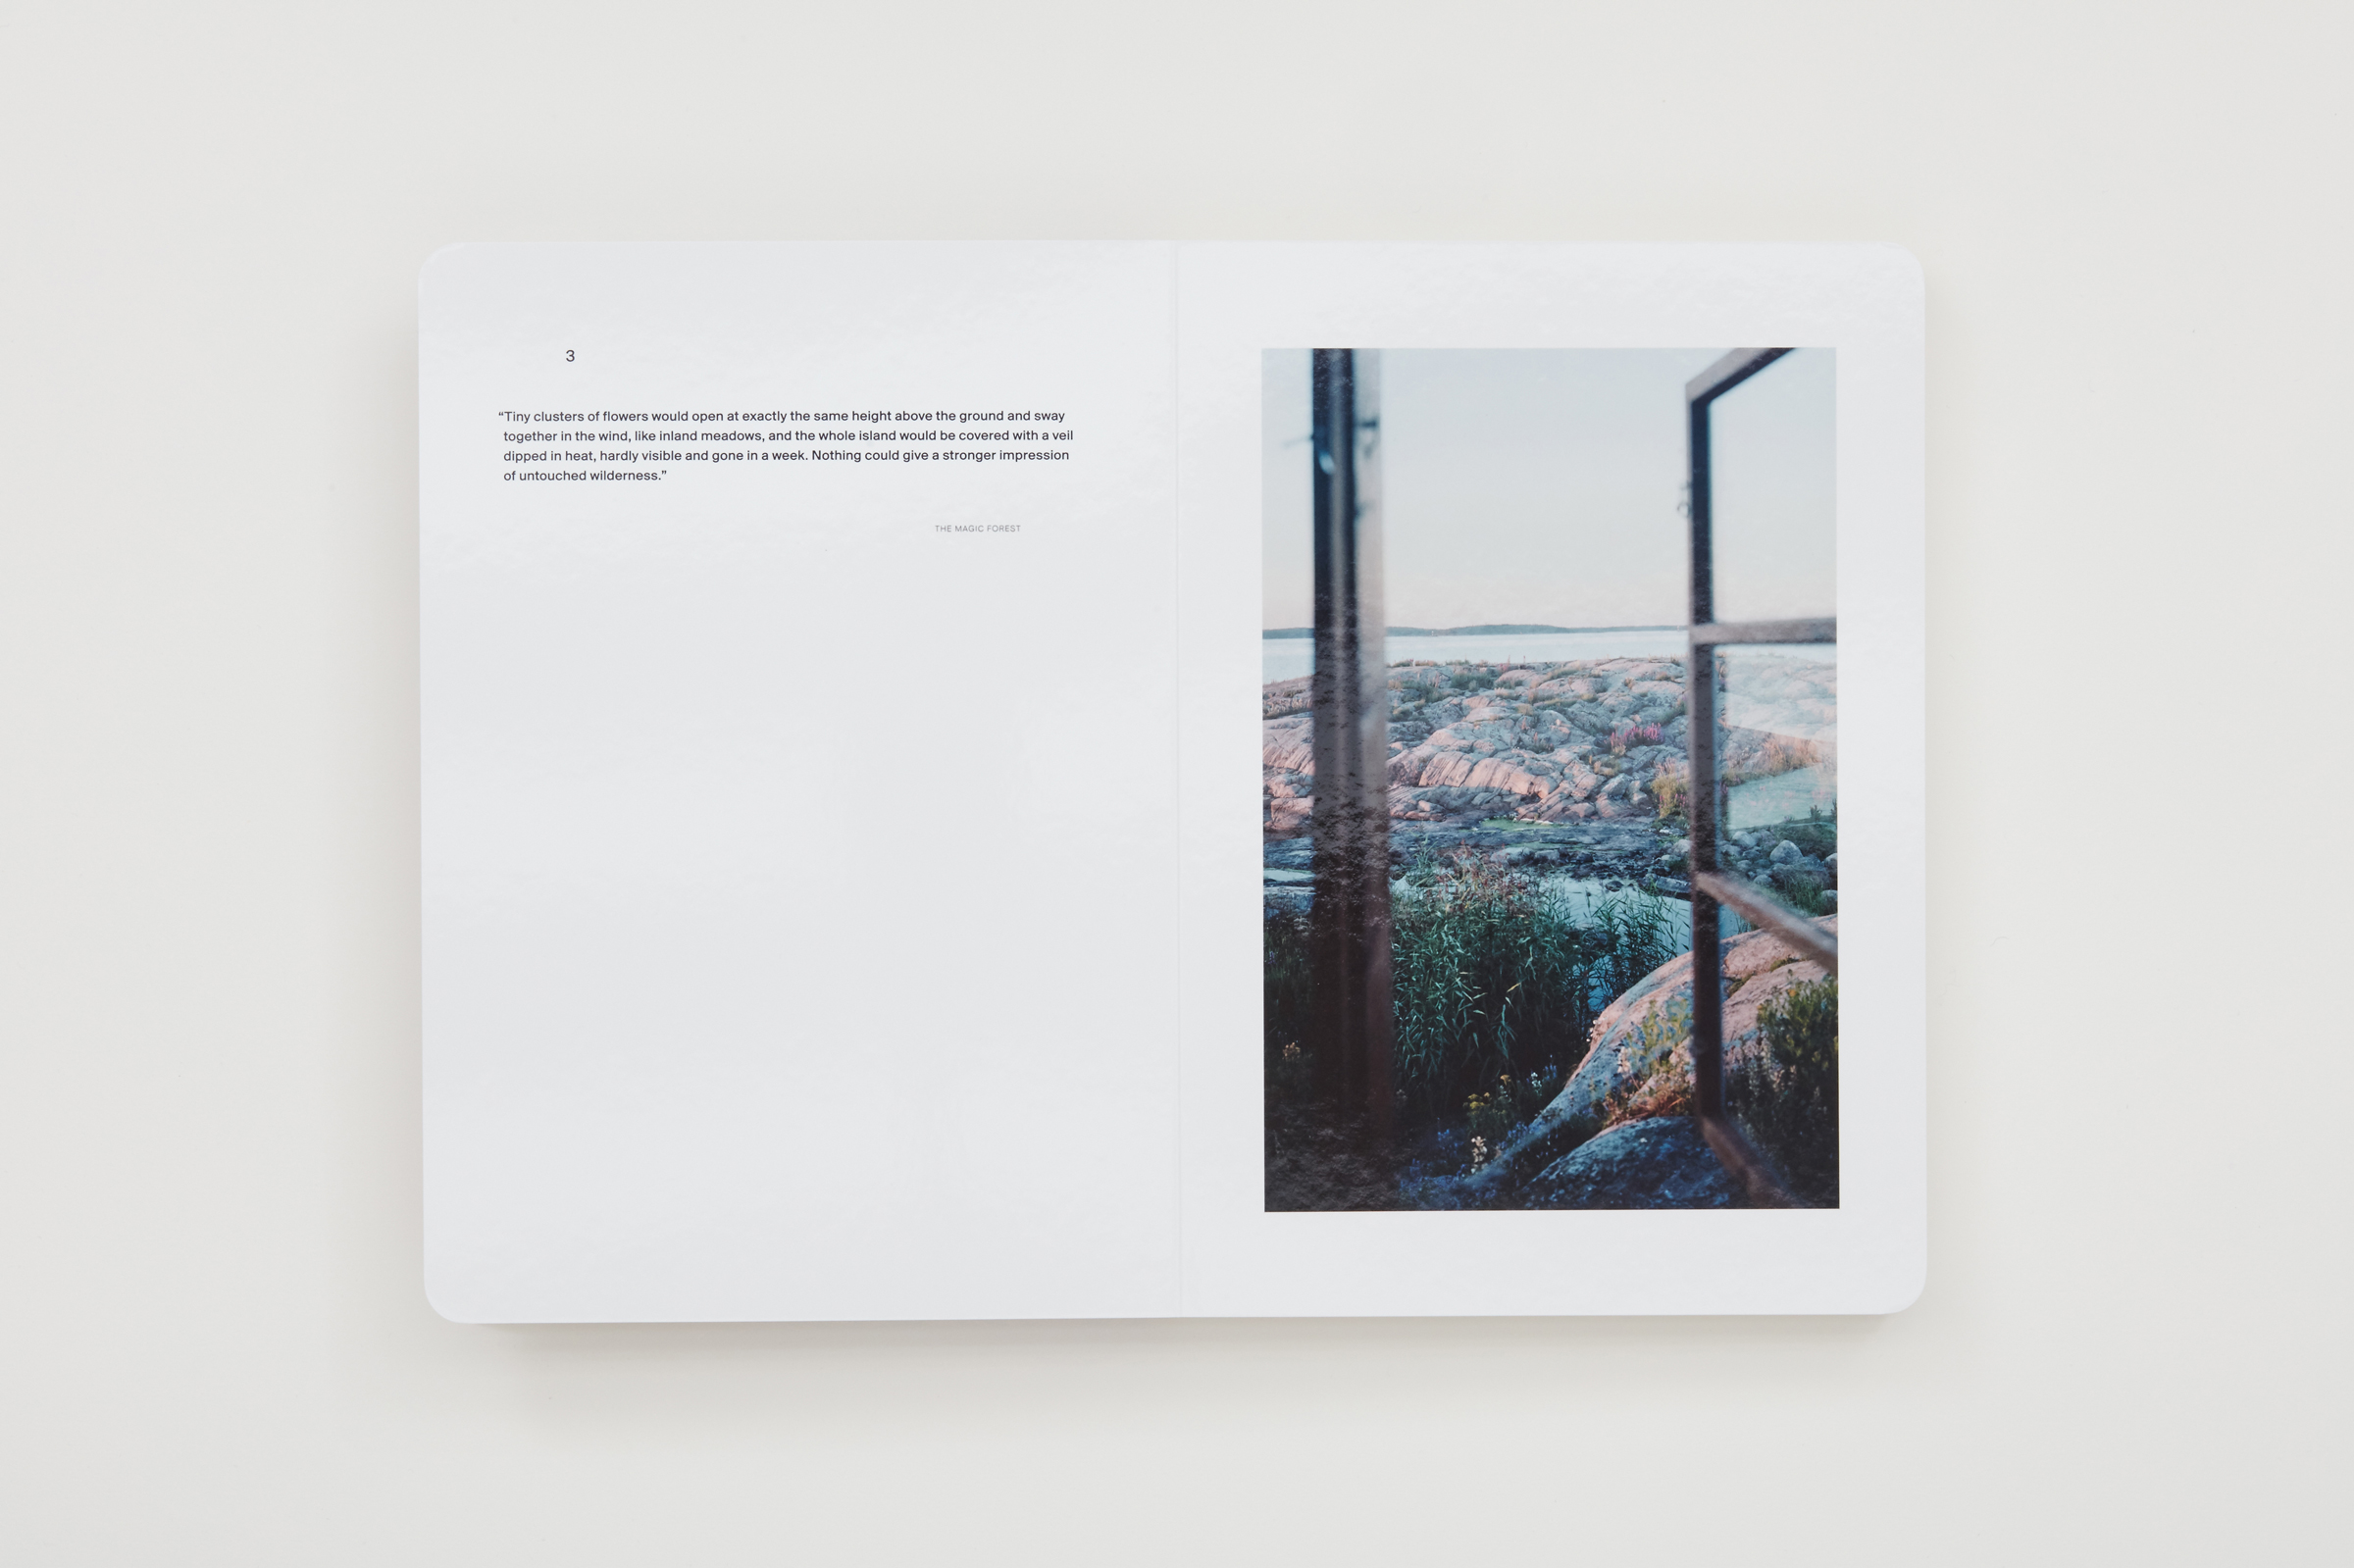 A Song for Windows  by Takashi Homma